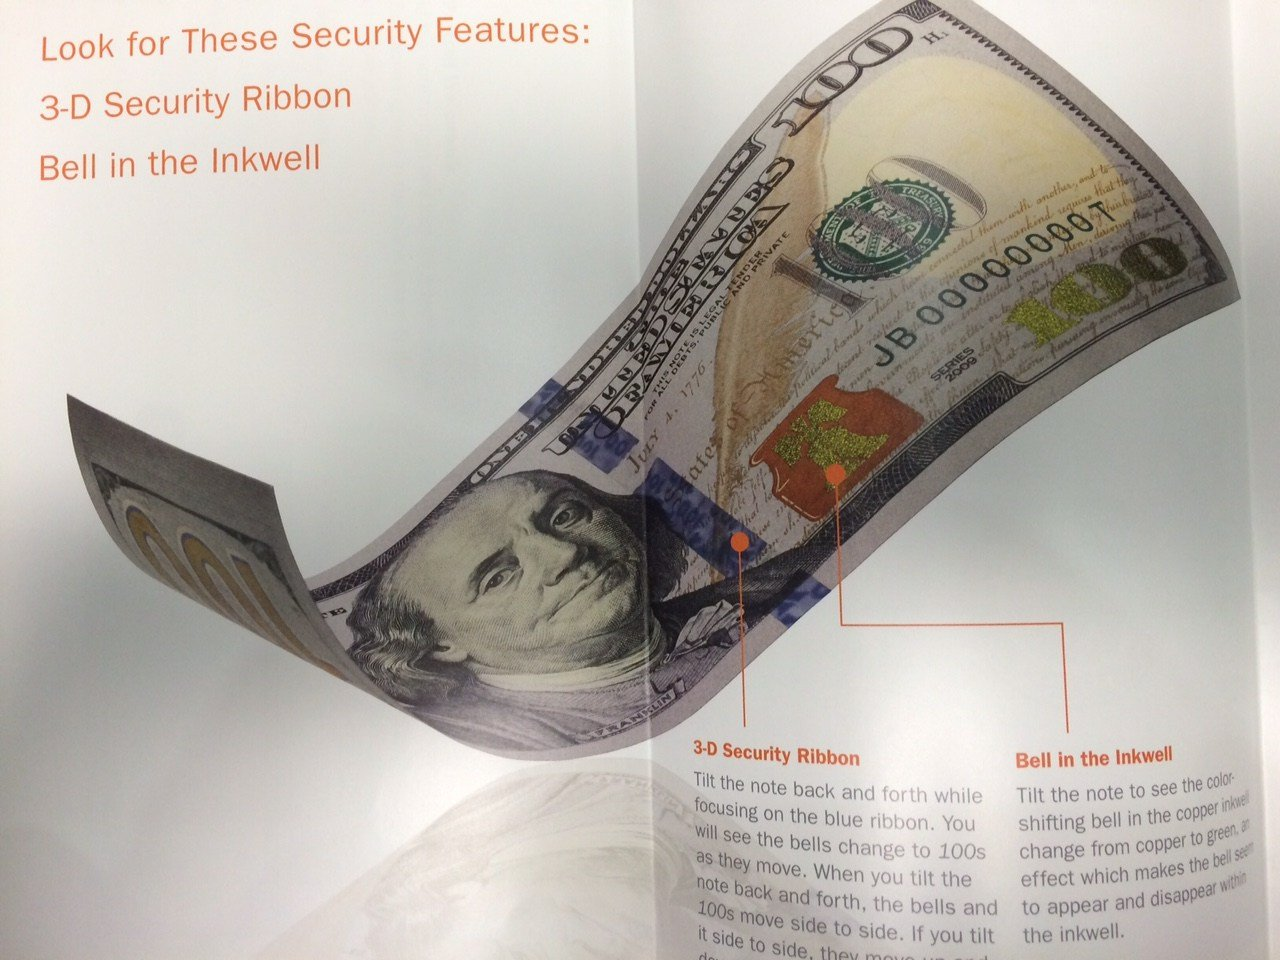 The Secret Service says to examine the security strip on bills for authenticity. (Source: Secret Service)